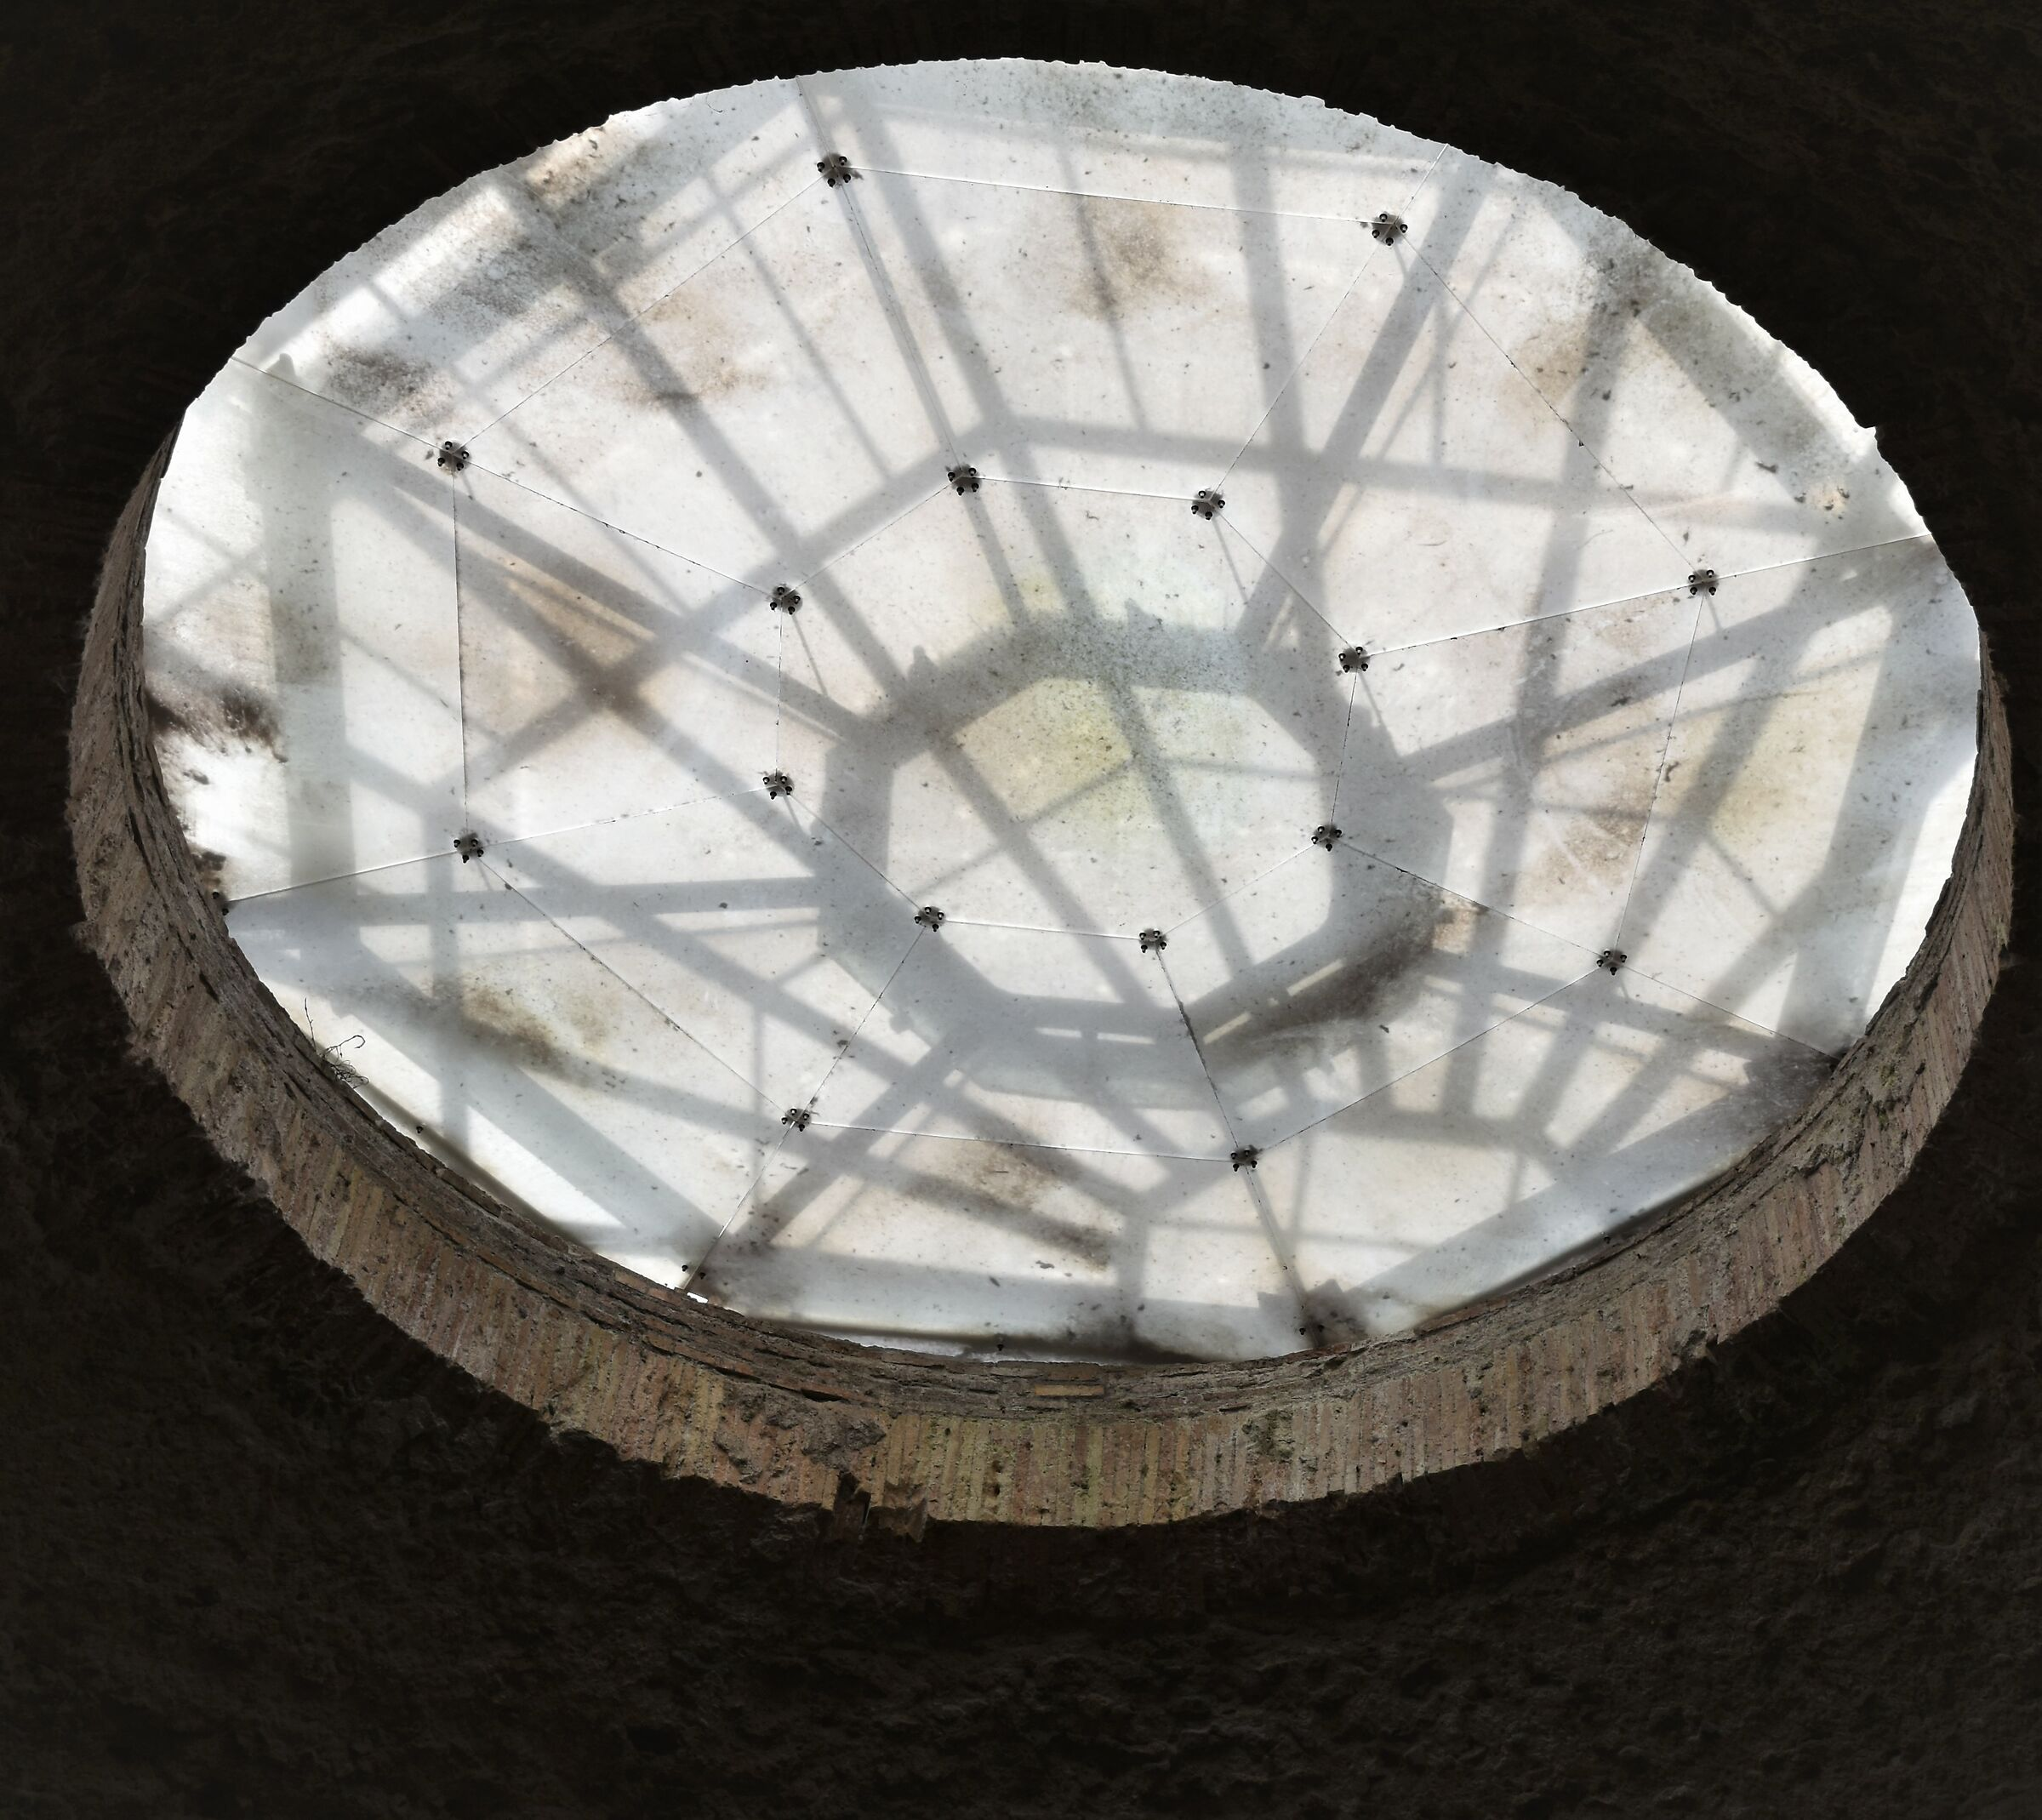 From the Domus area, looking towards the sky.........